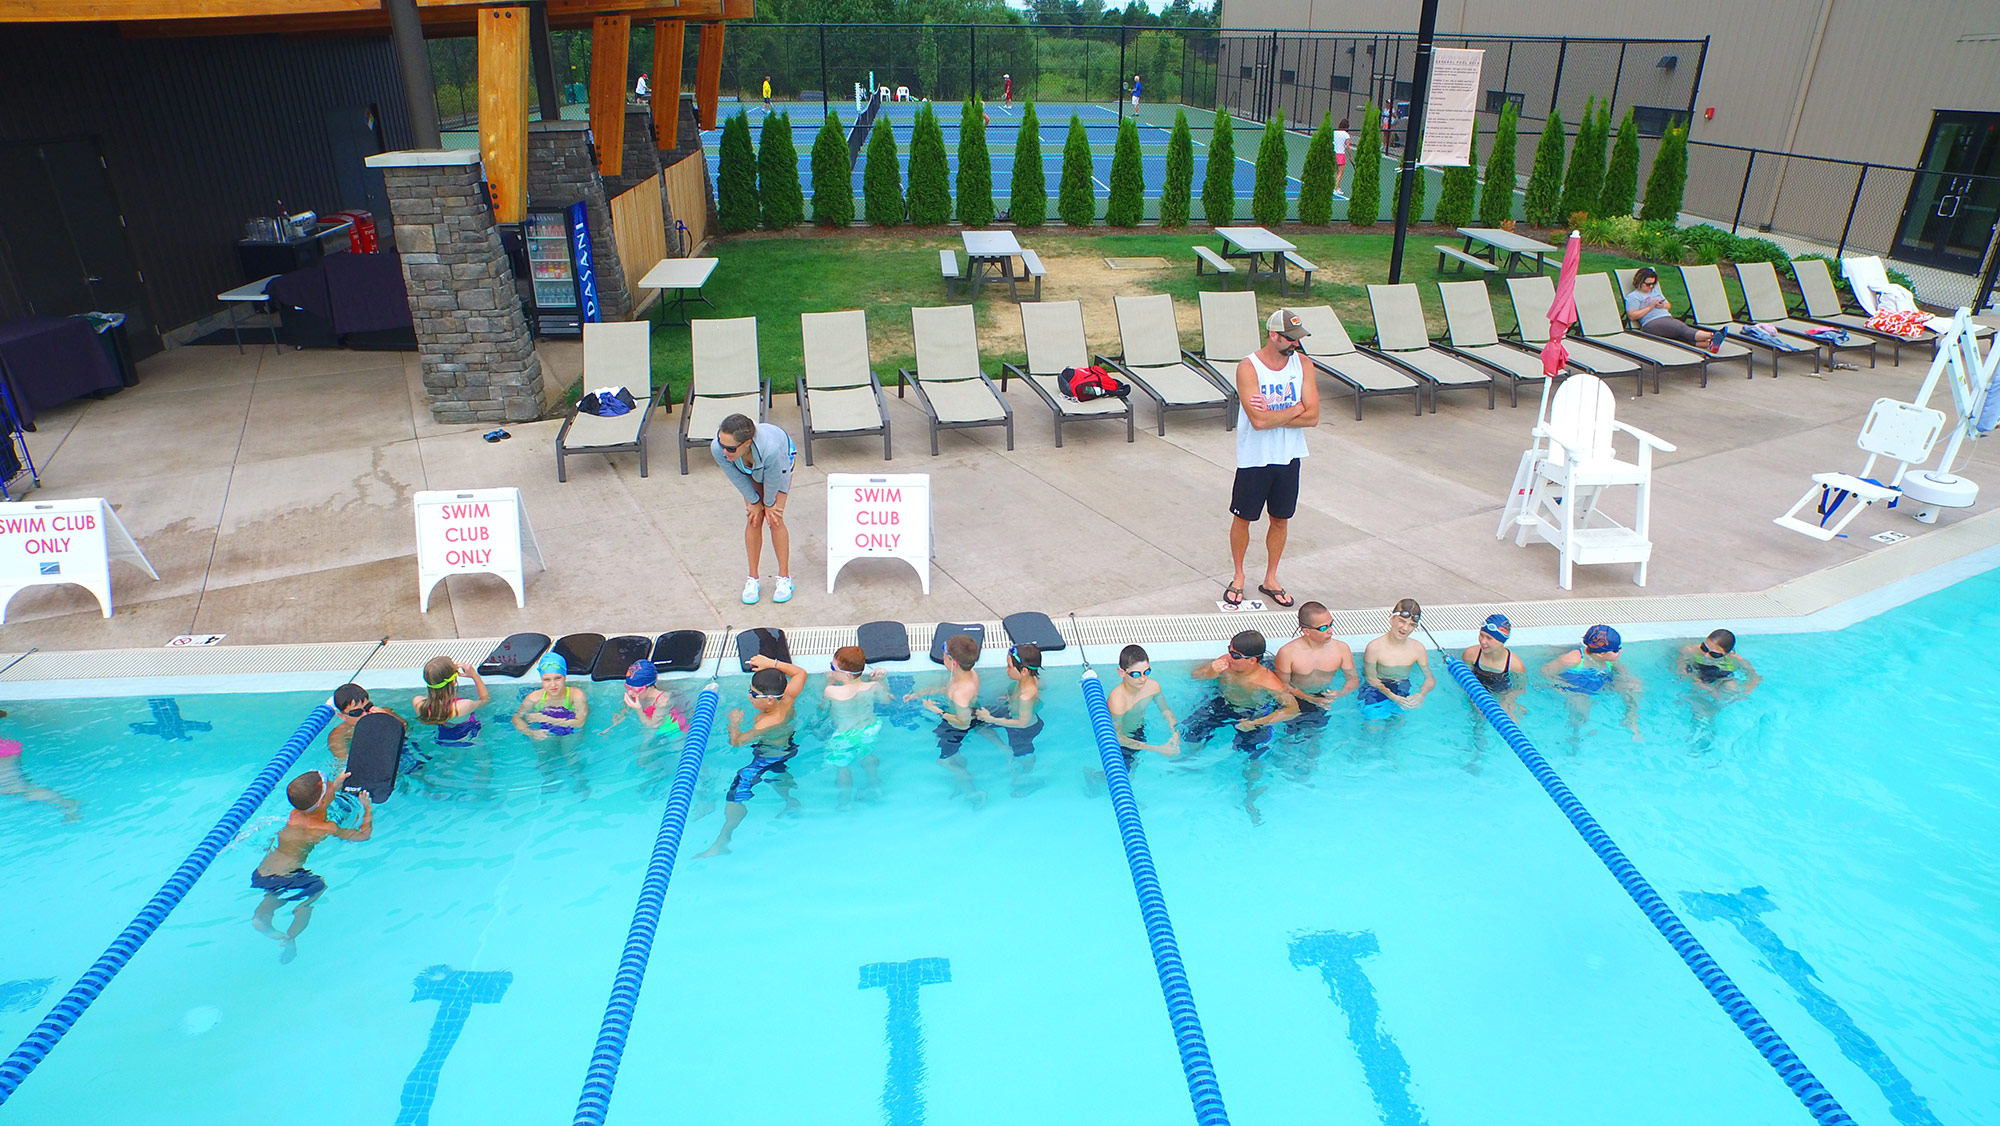 shc-swim-club-DJI_0081 copy